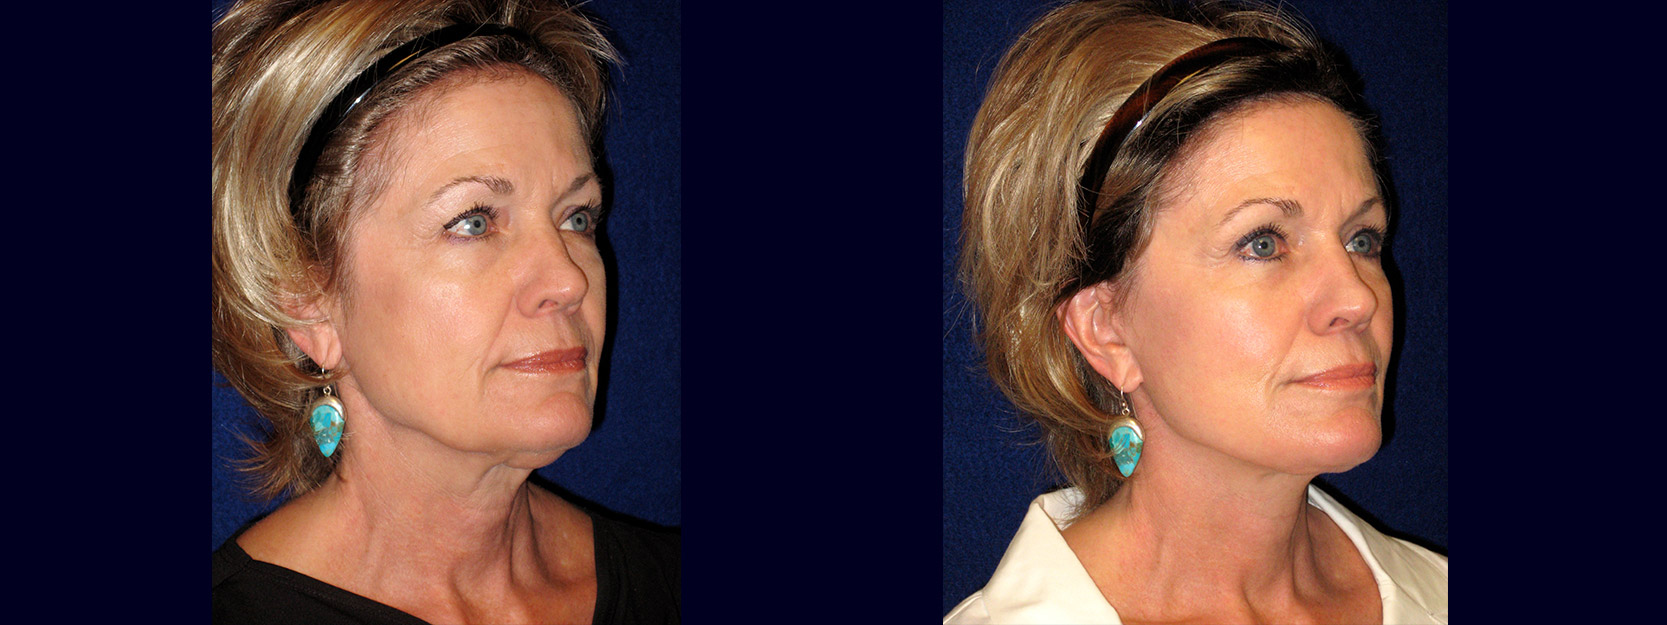 Right 3/4 View - Face and Neck Lift with Upper Eyelid Surgery